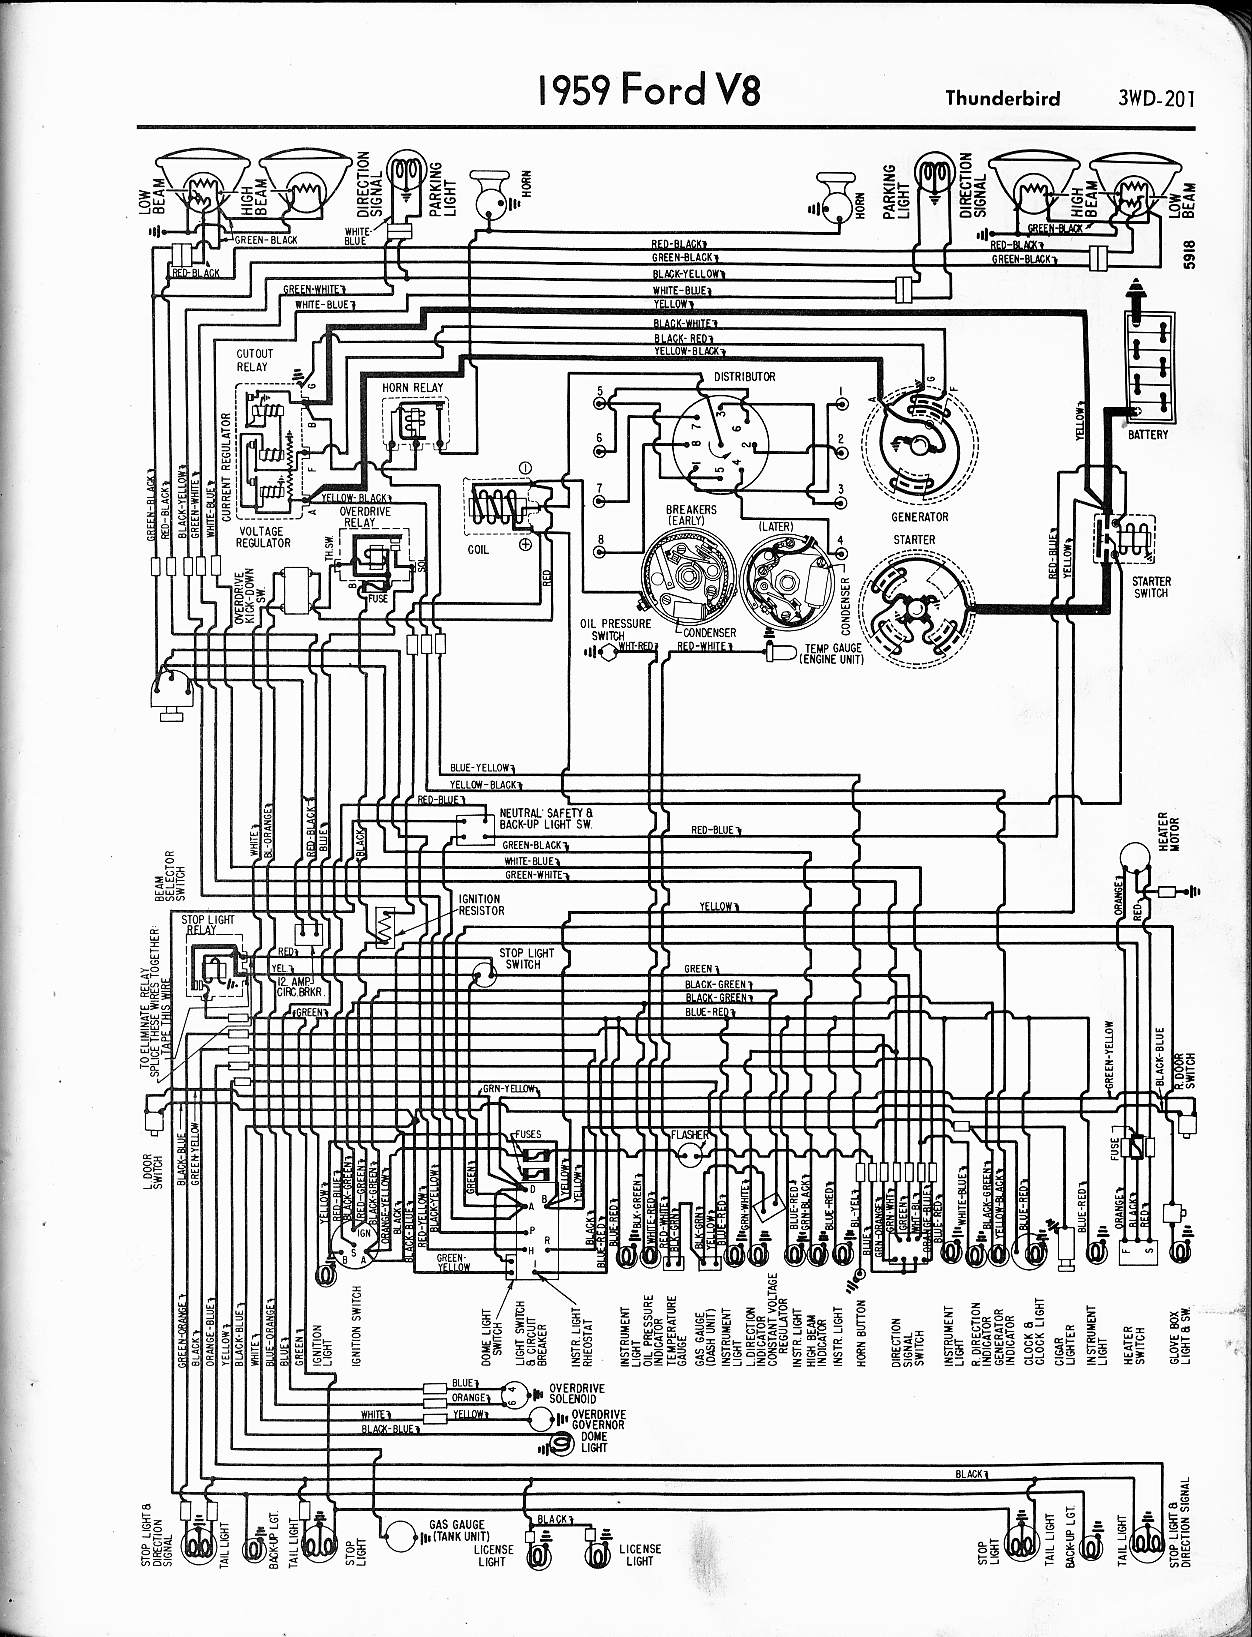 1961 Corvette Wiring Diagram Library 1960 1956 Ford Color Codes Data Schema C6 Fuse Box